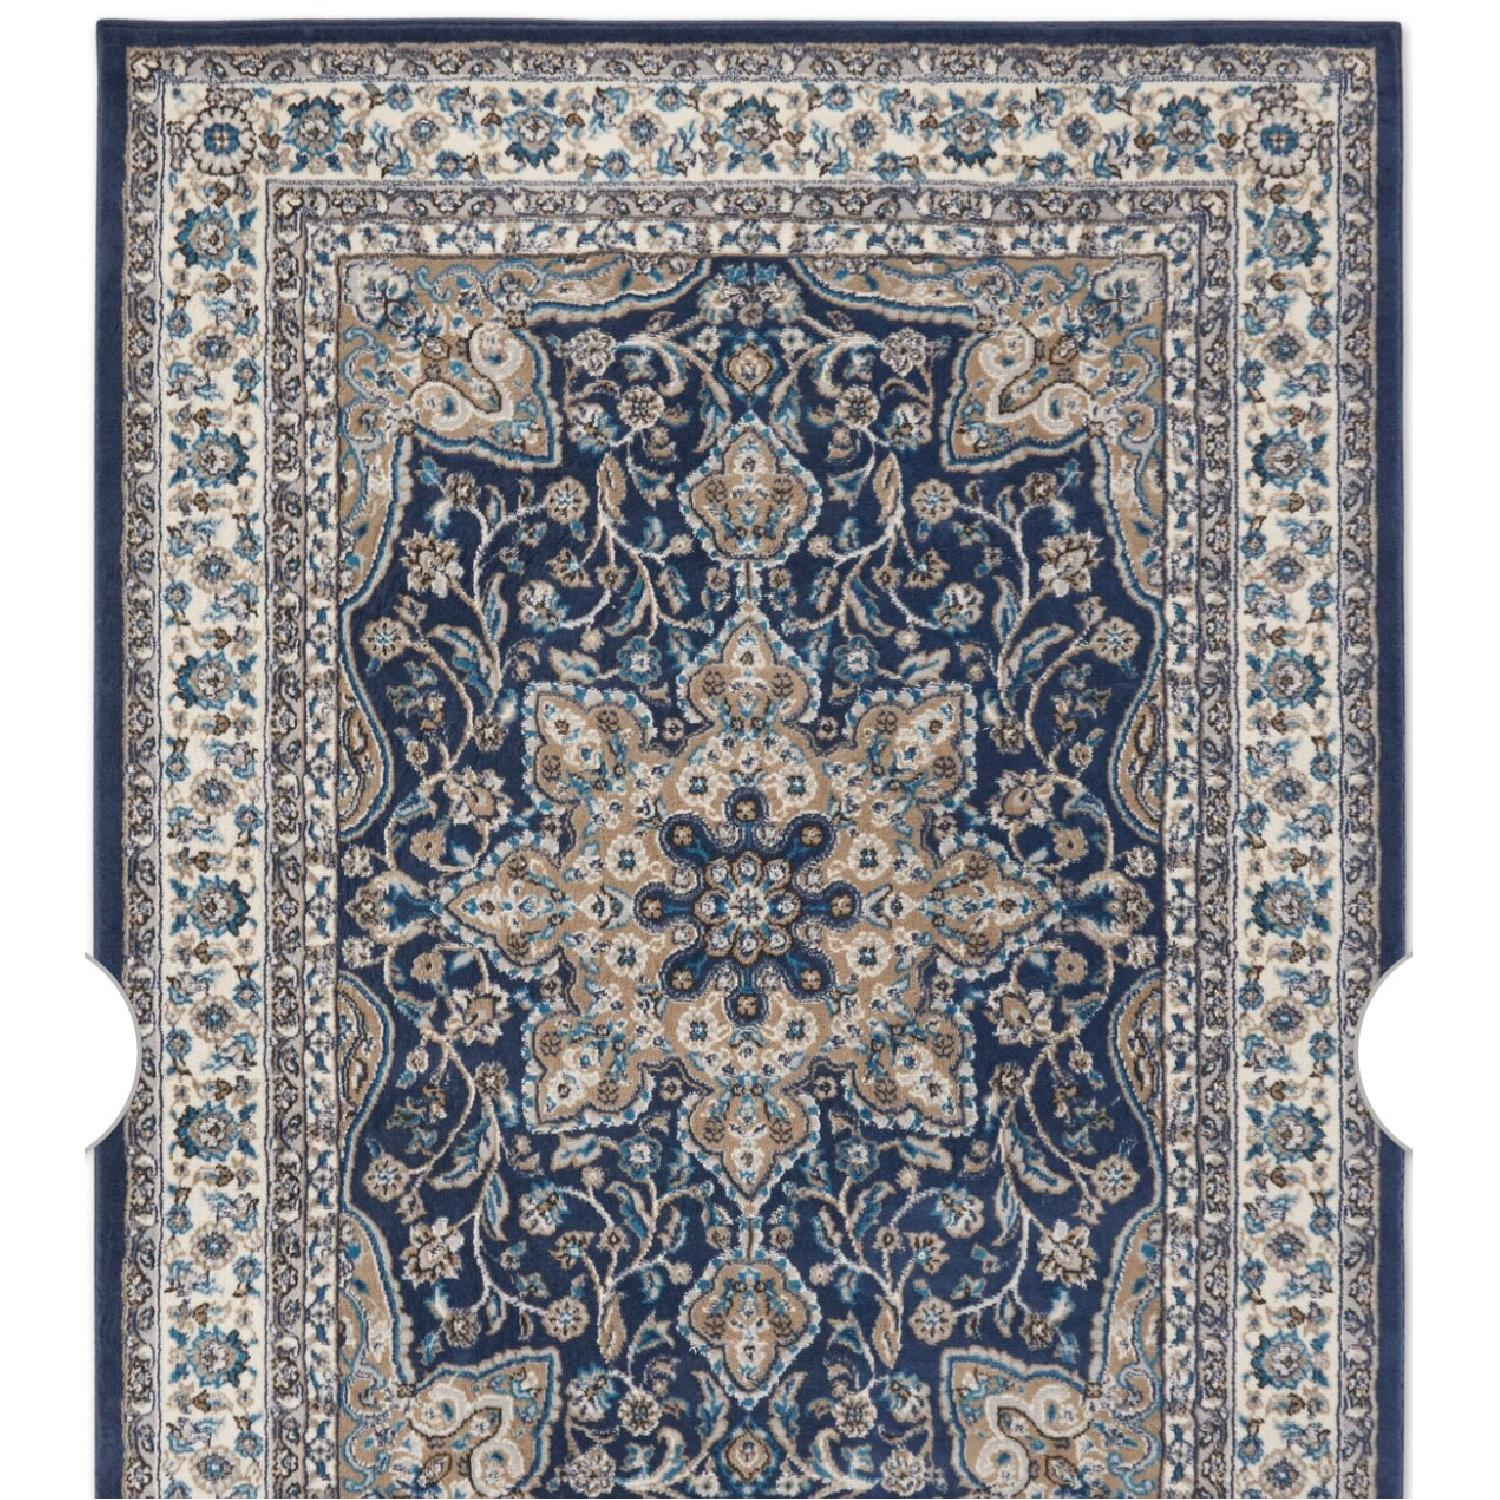 Charlton Home Arend Blue/Ivory Area Rug - image-4